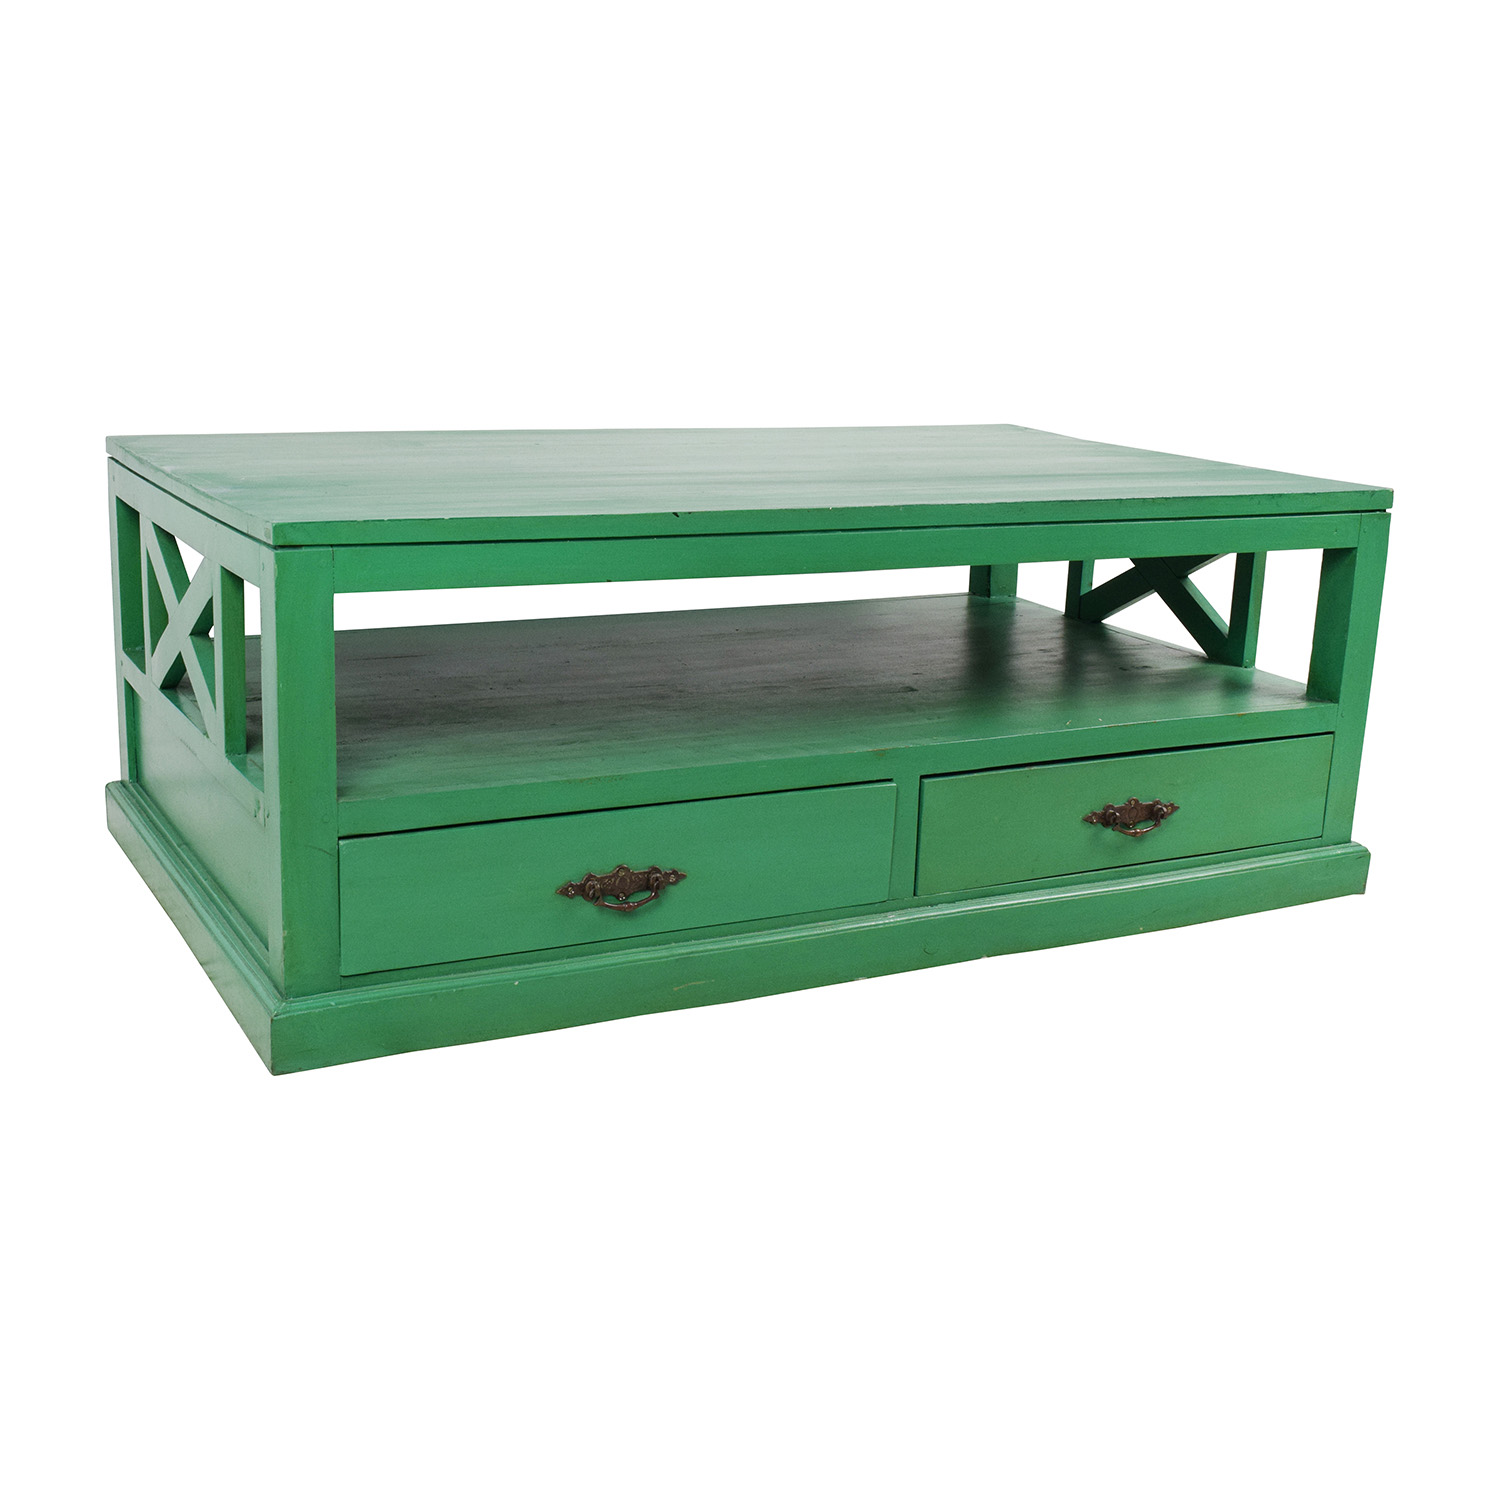 53 Off Nadeau Nadeau Handmade Green Coffee Table Tables